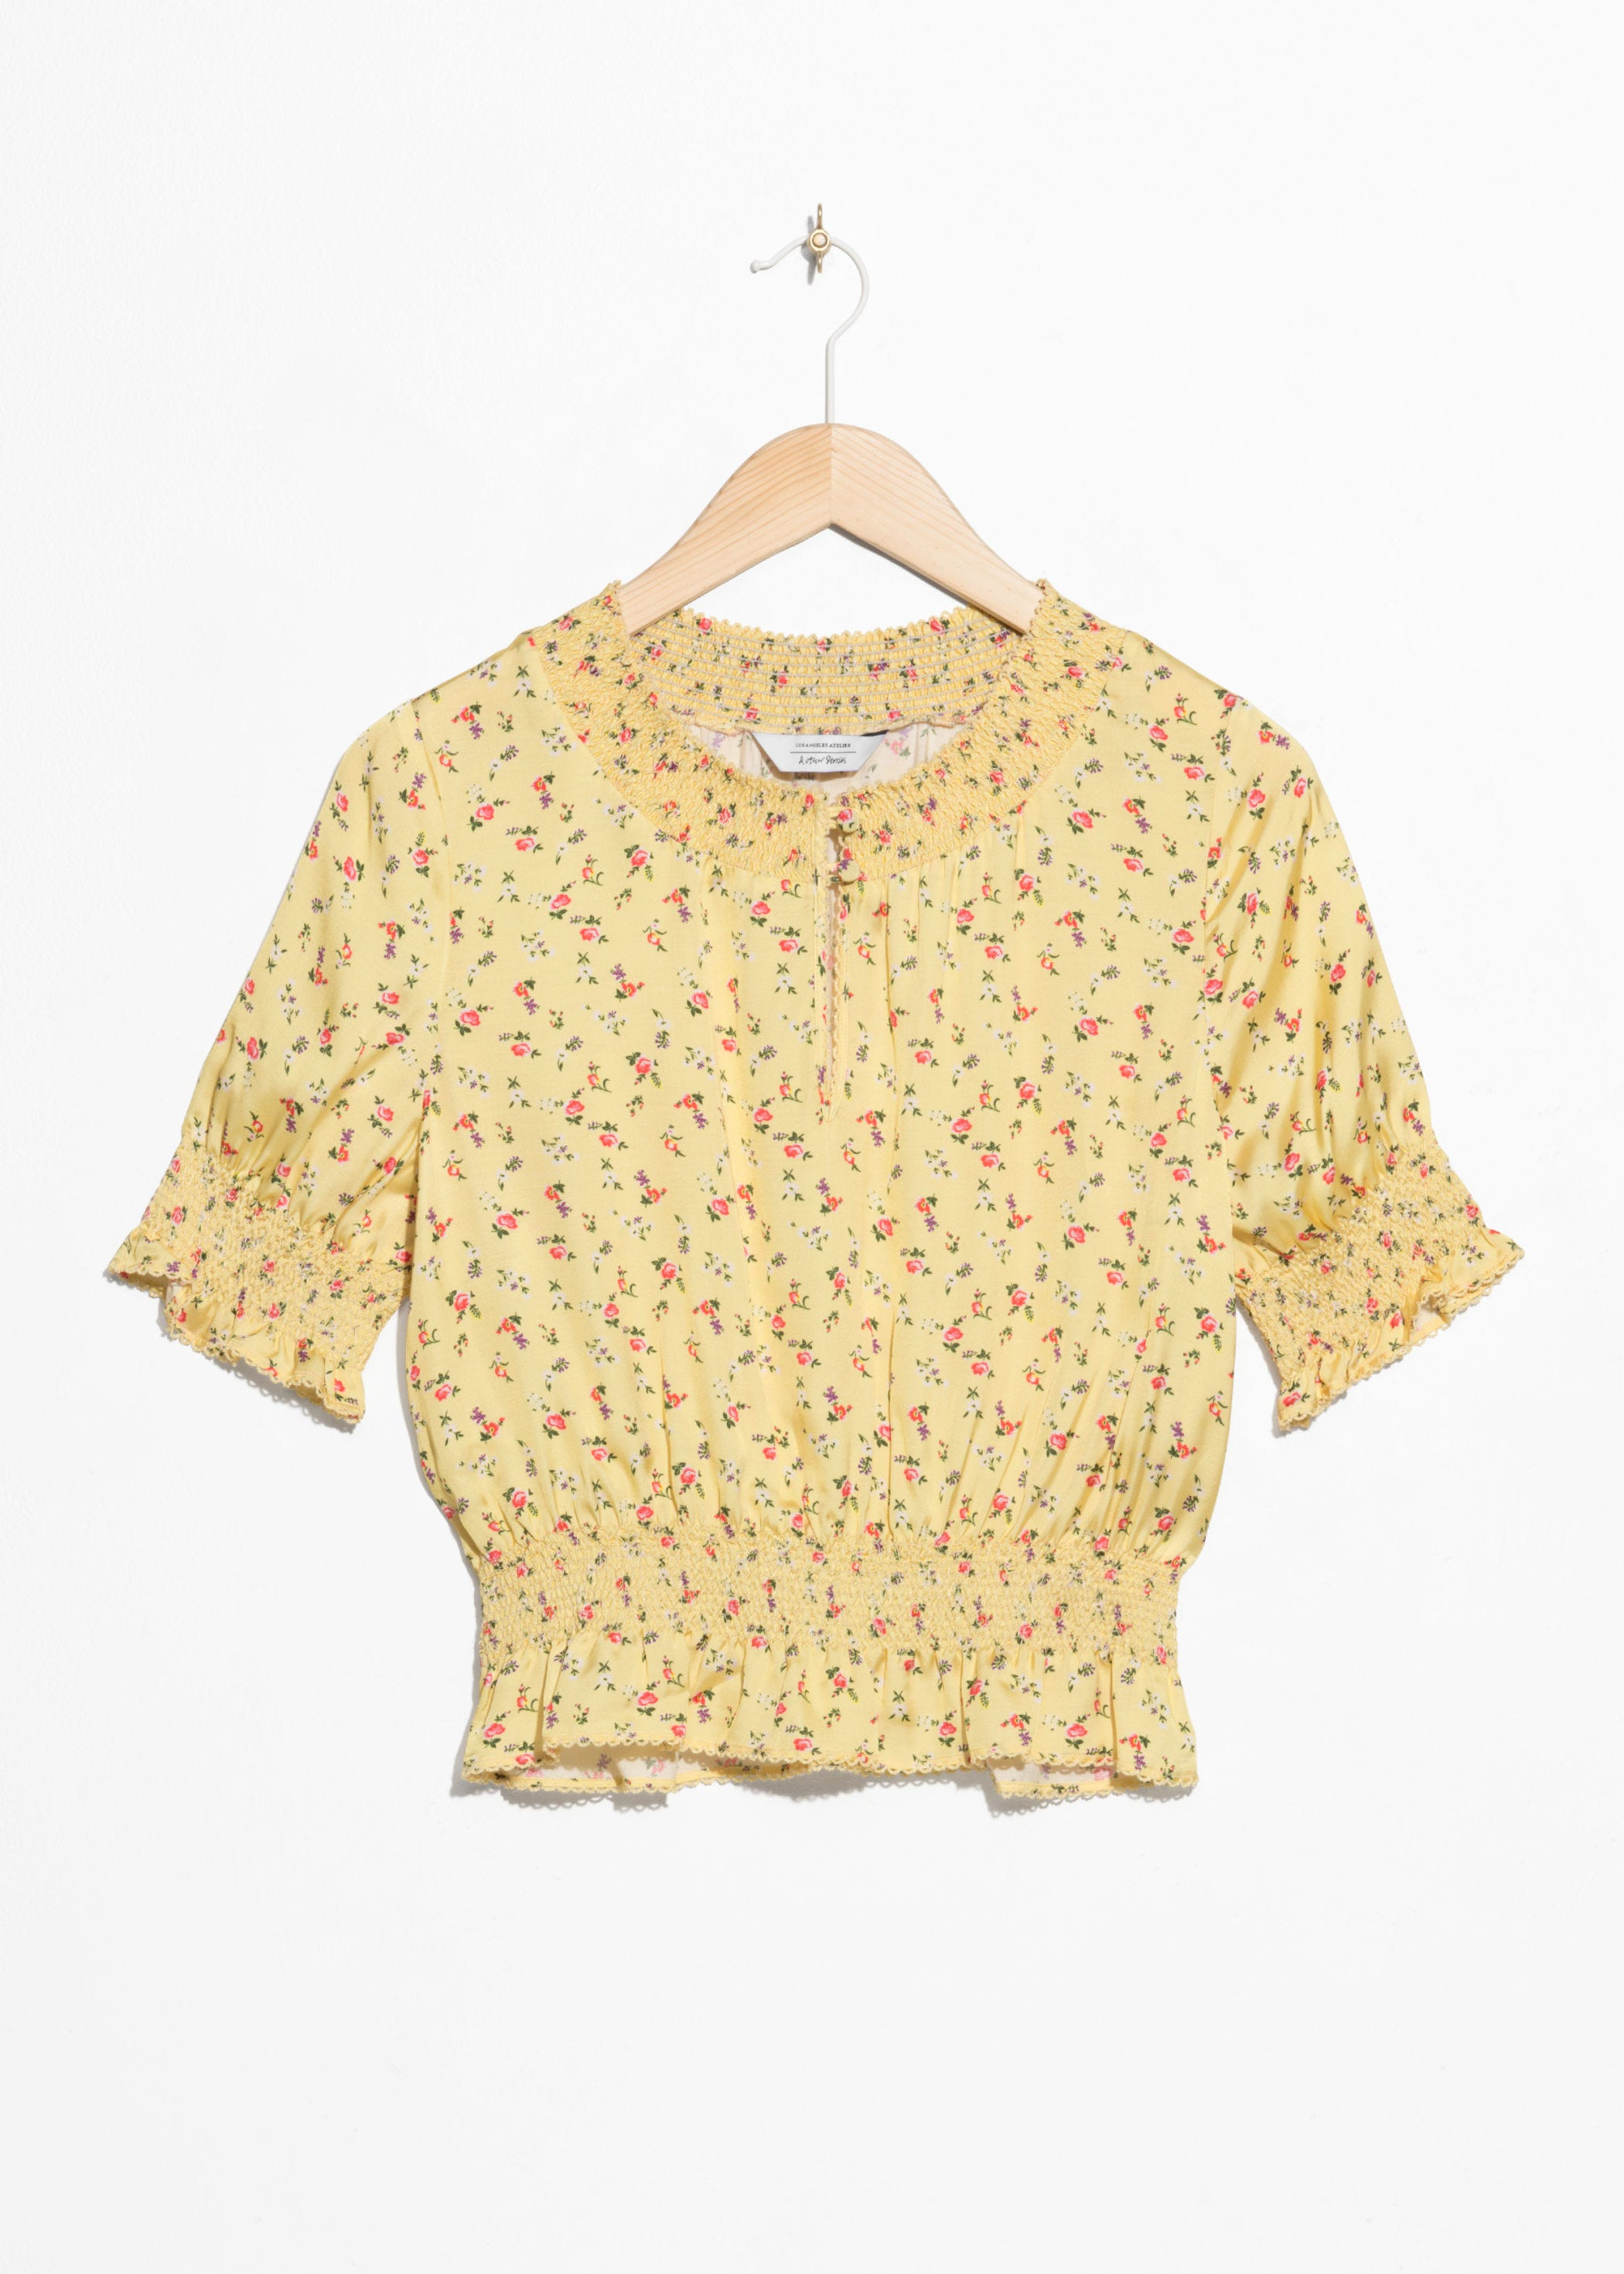 529b5b54b0090e INFO ·   Other Stories. Floral Print Ruched Blouse